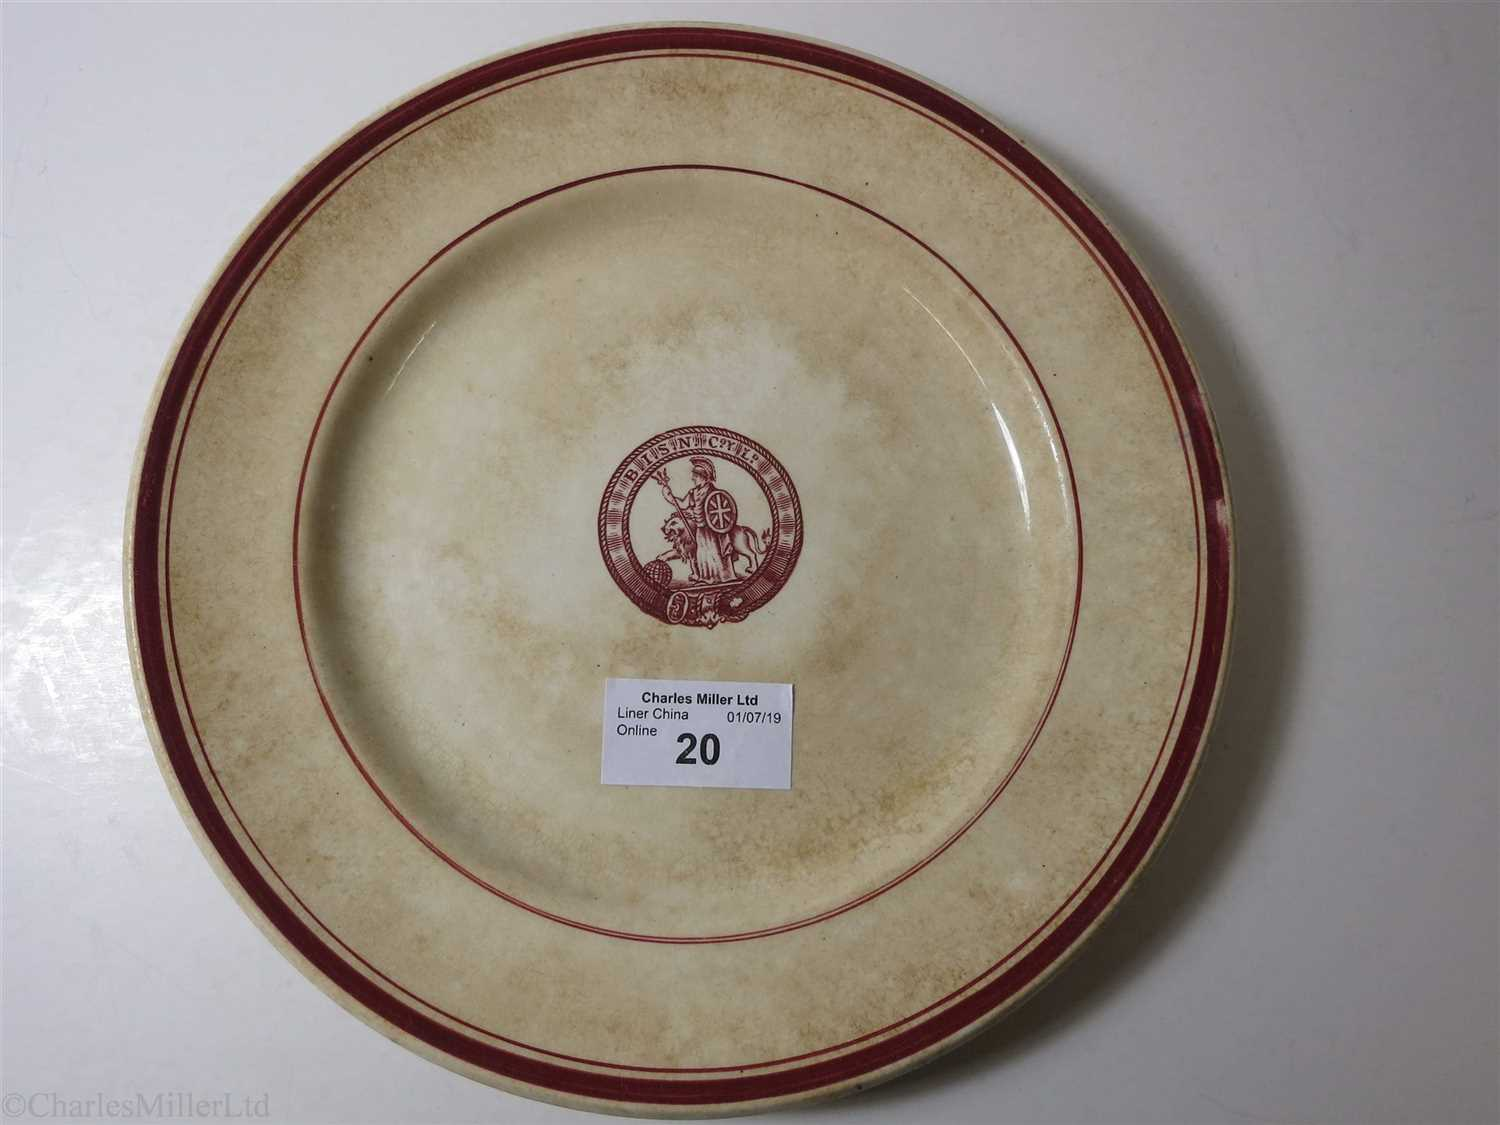 Lot 20-BRITISH INDIA STEAM NAVIGATION COMPANY: AN IRONSTONE DINNER PLATE BY A.J. WILKINSON LTD. ENGLAND, CIRCA 1920